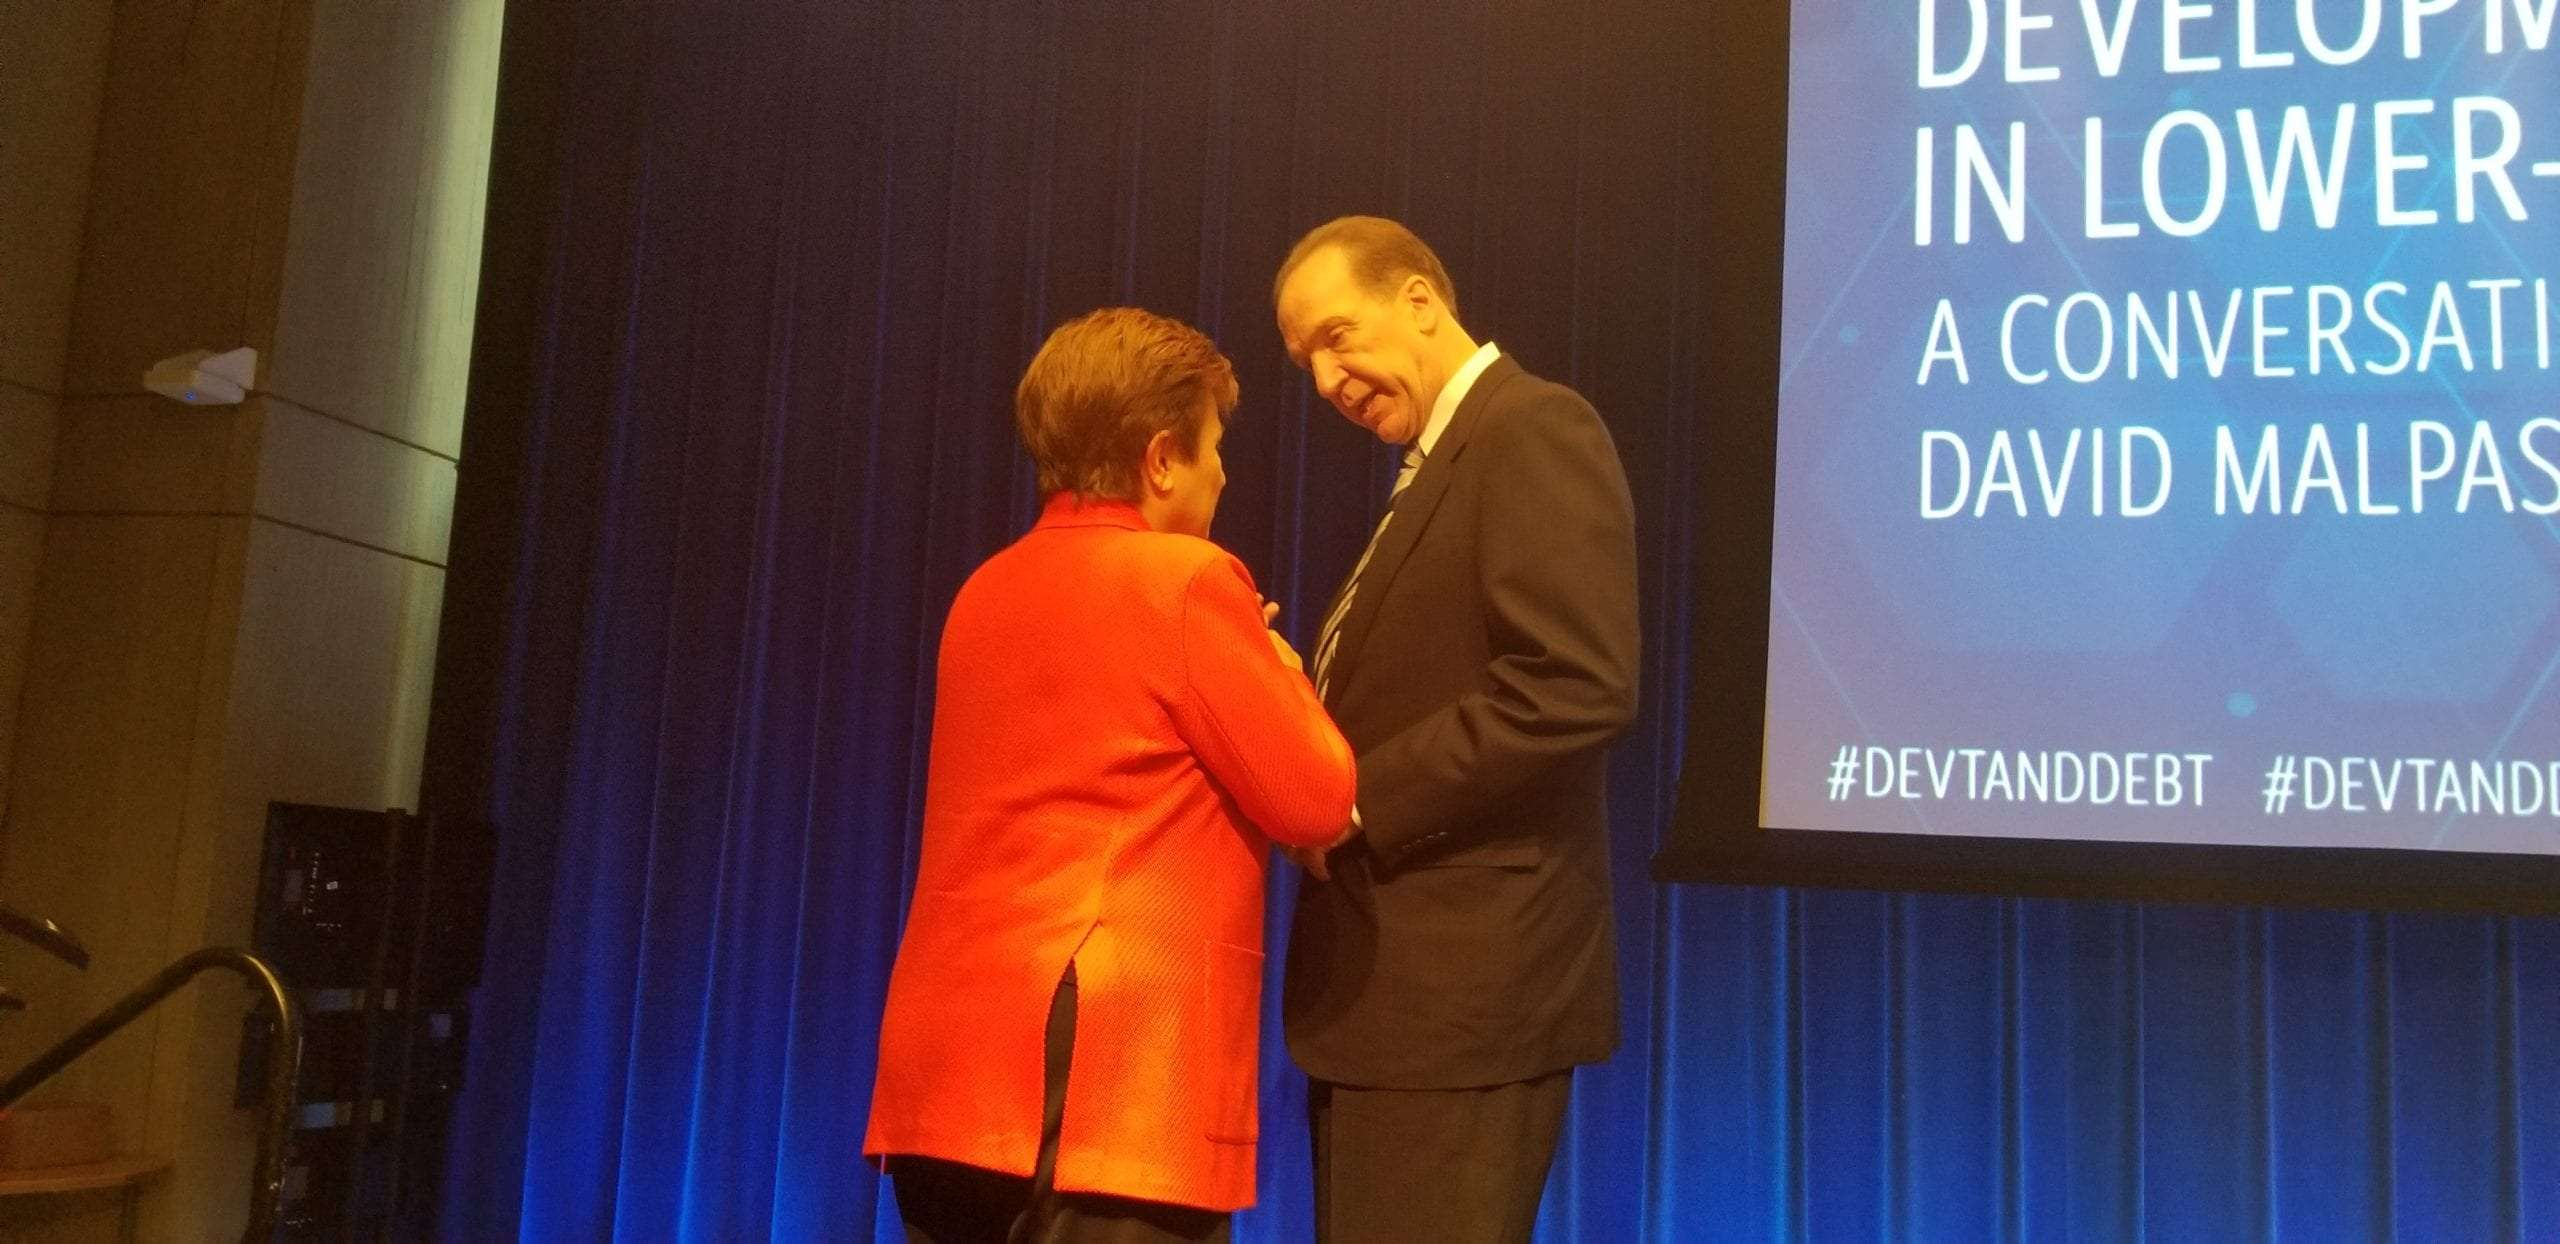 World Bank President David Malpass and IMF Managing Director Kristalina Georgieva discussing debt management and sustainability for lower-income countries in Washington DC on Monday